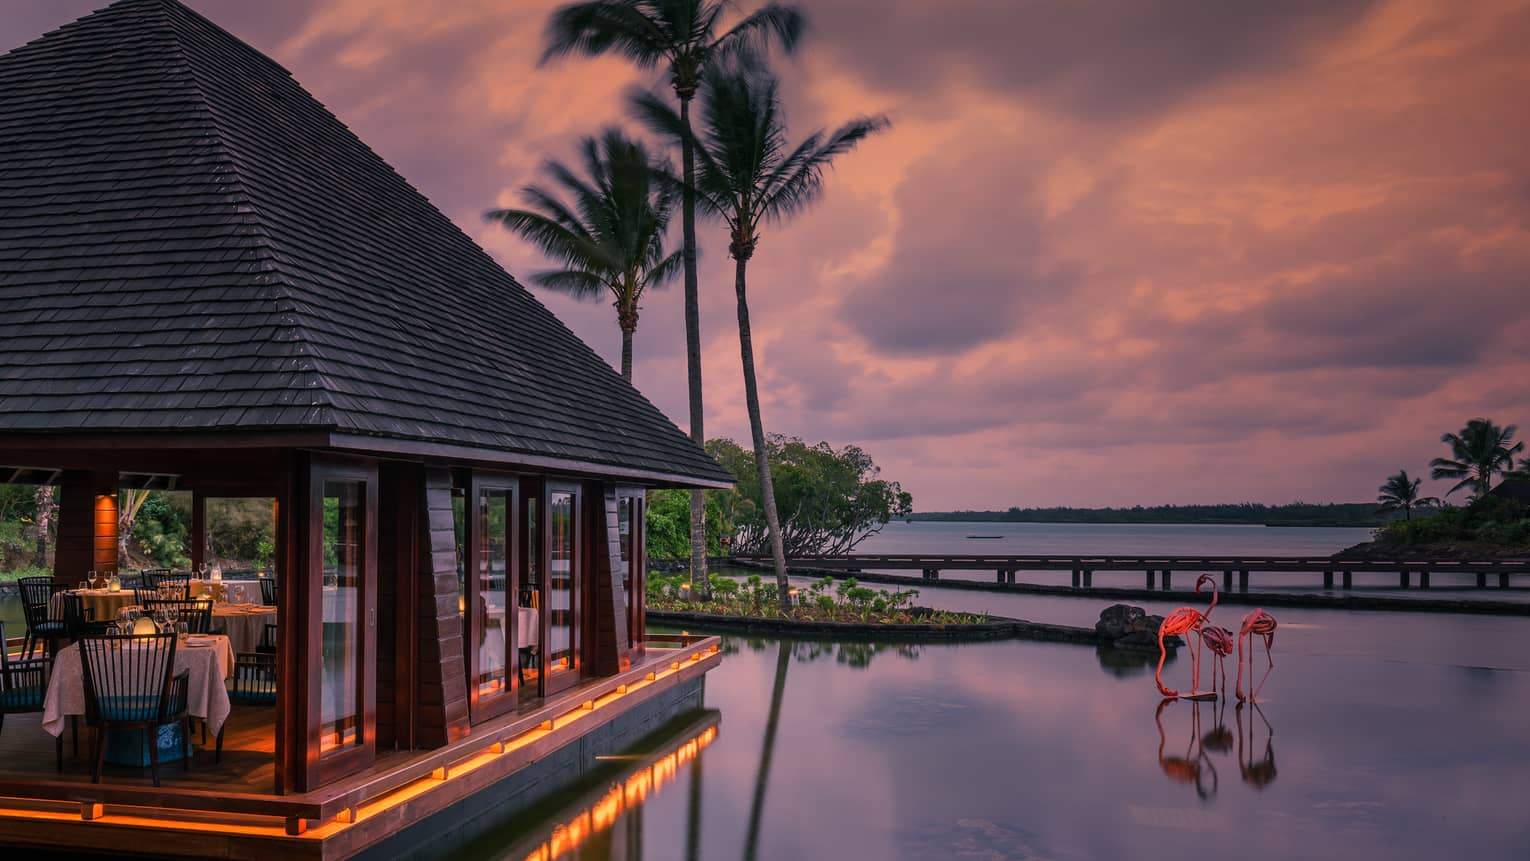 Beau Champ restaurant pavilion at sunset, two pink flamingo sculptures in water